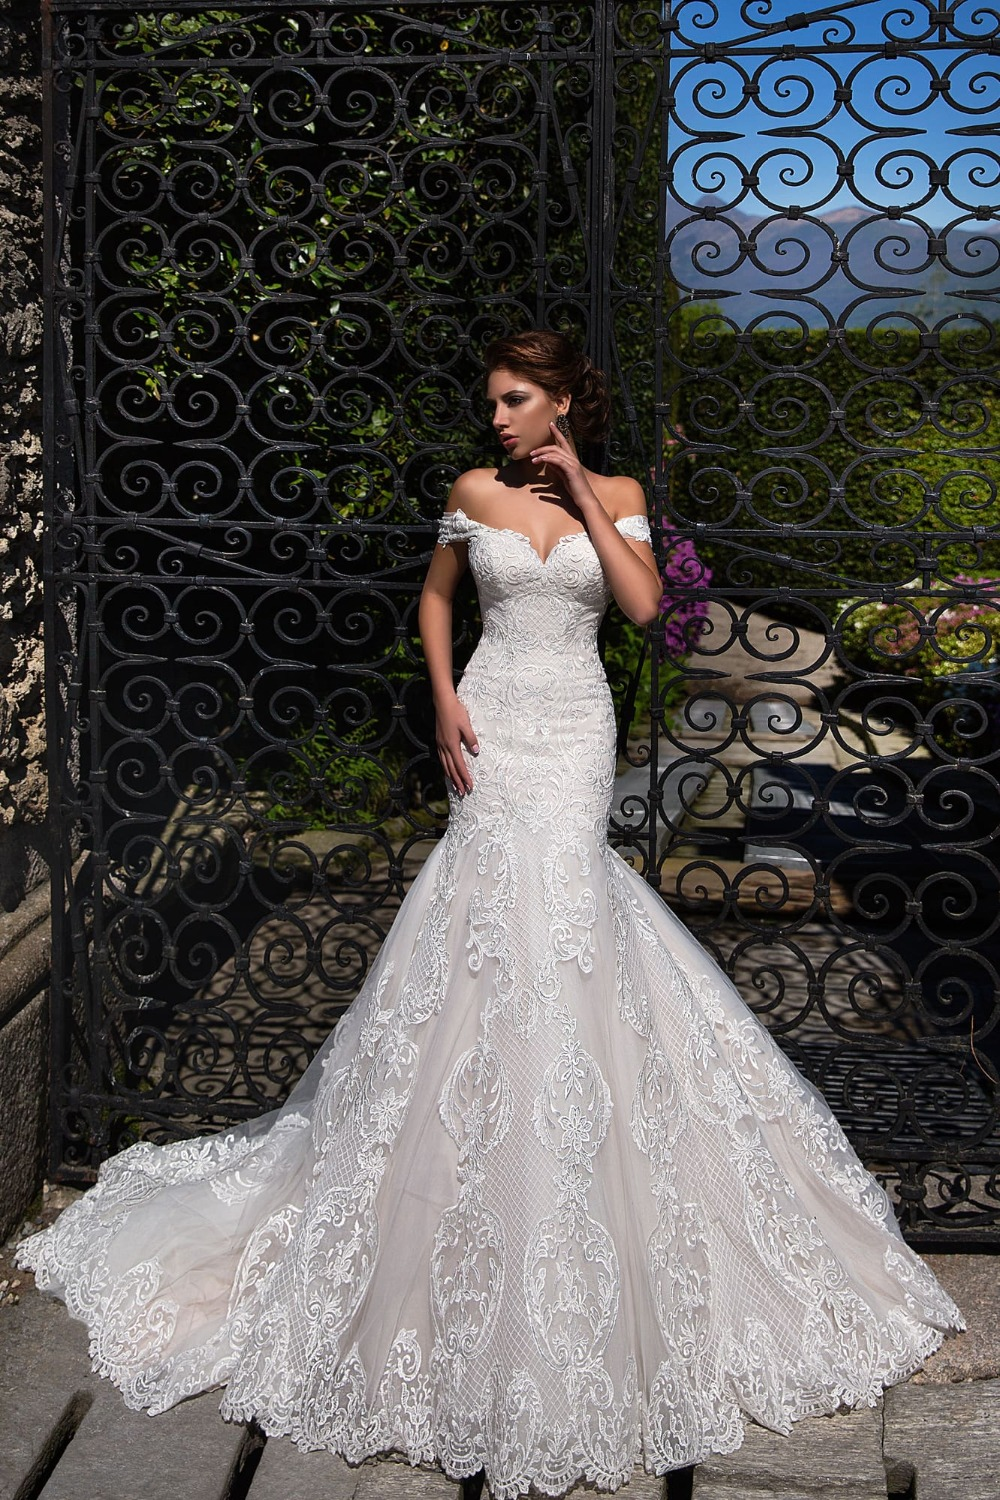 New 2020 Mermaid Wedding Dresses Lace Up Appliques Tulle Wedding Gowns Bride Dress Lace Mariage Gowns Off Shoulder Wedding Dress